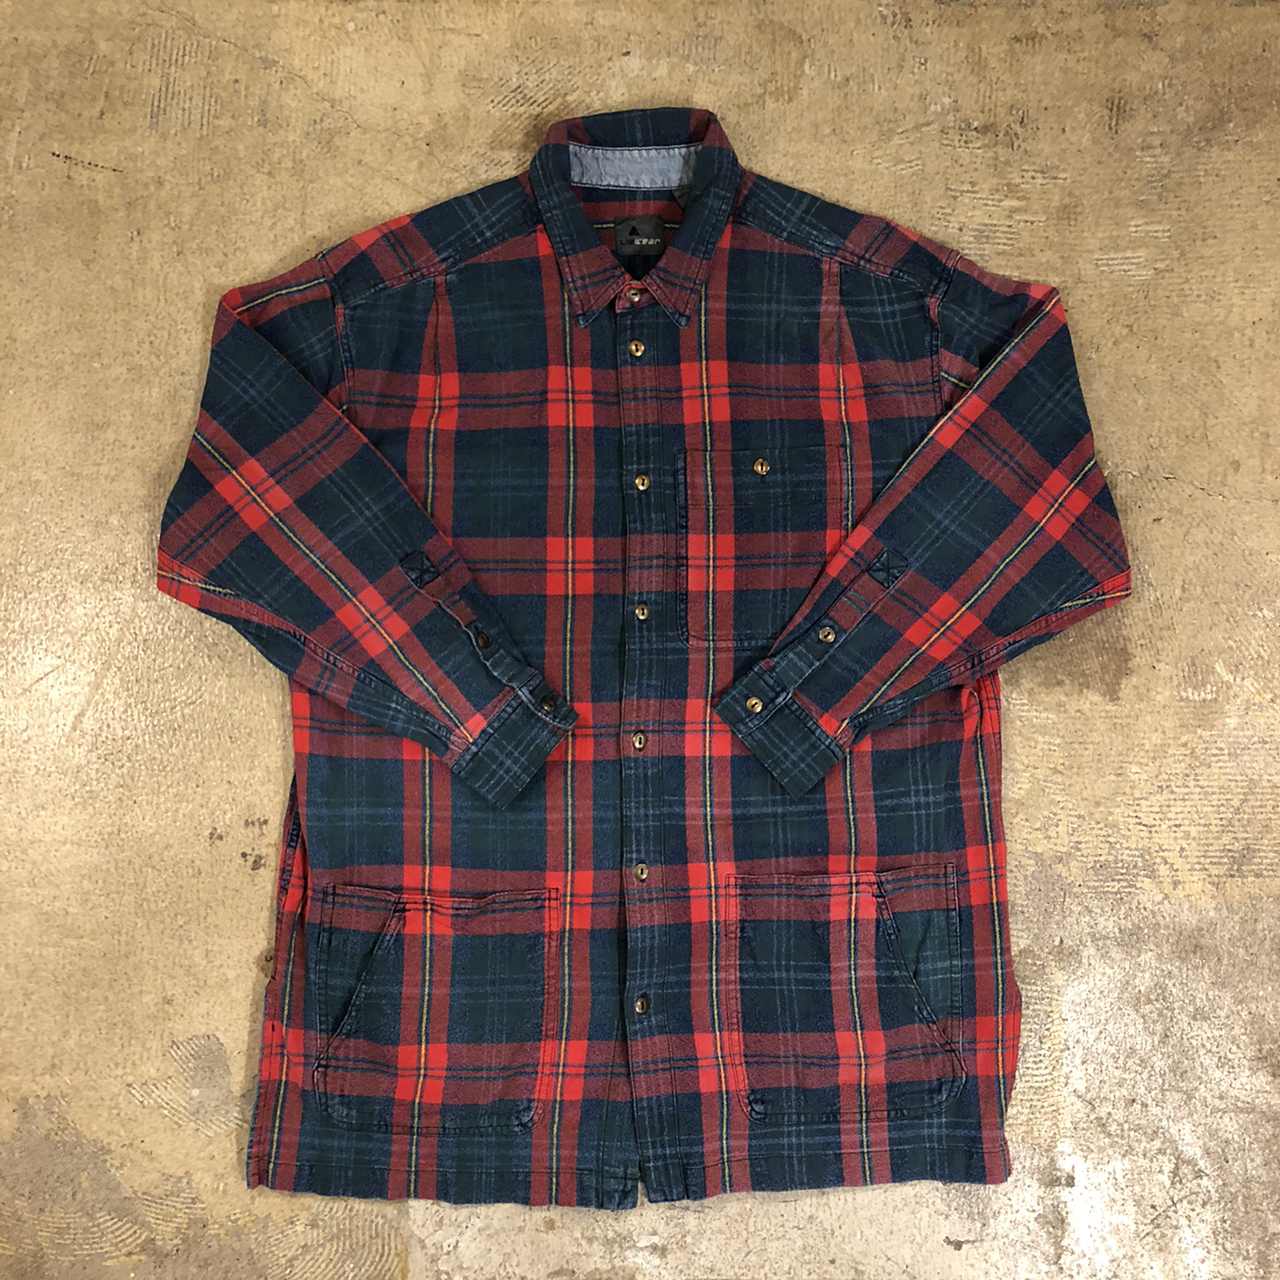 Lizwear Shirts Jacket ¥7,400+tax